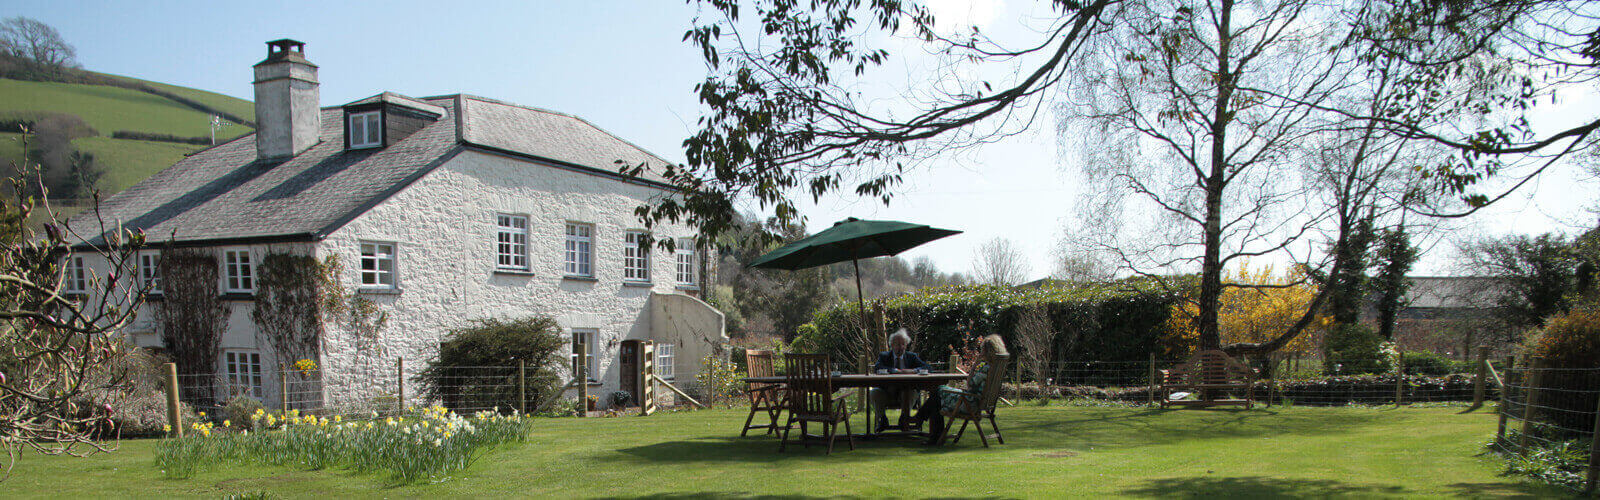 Gages Mill Country Guest House - Asburton